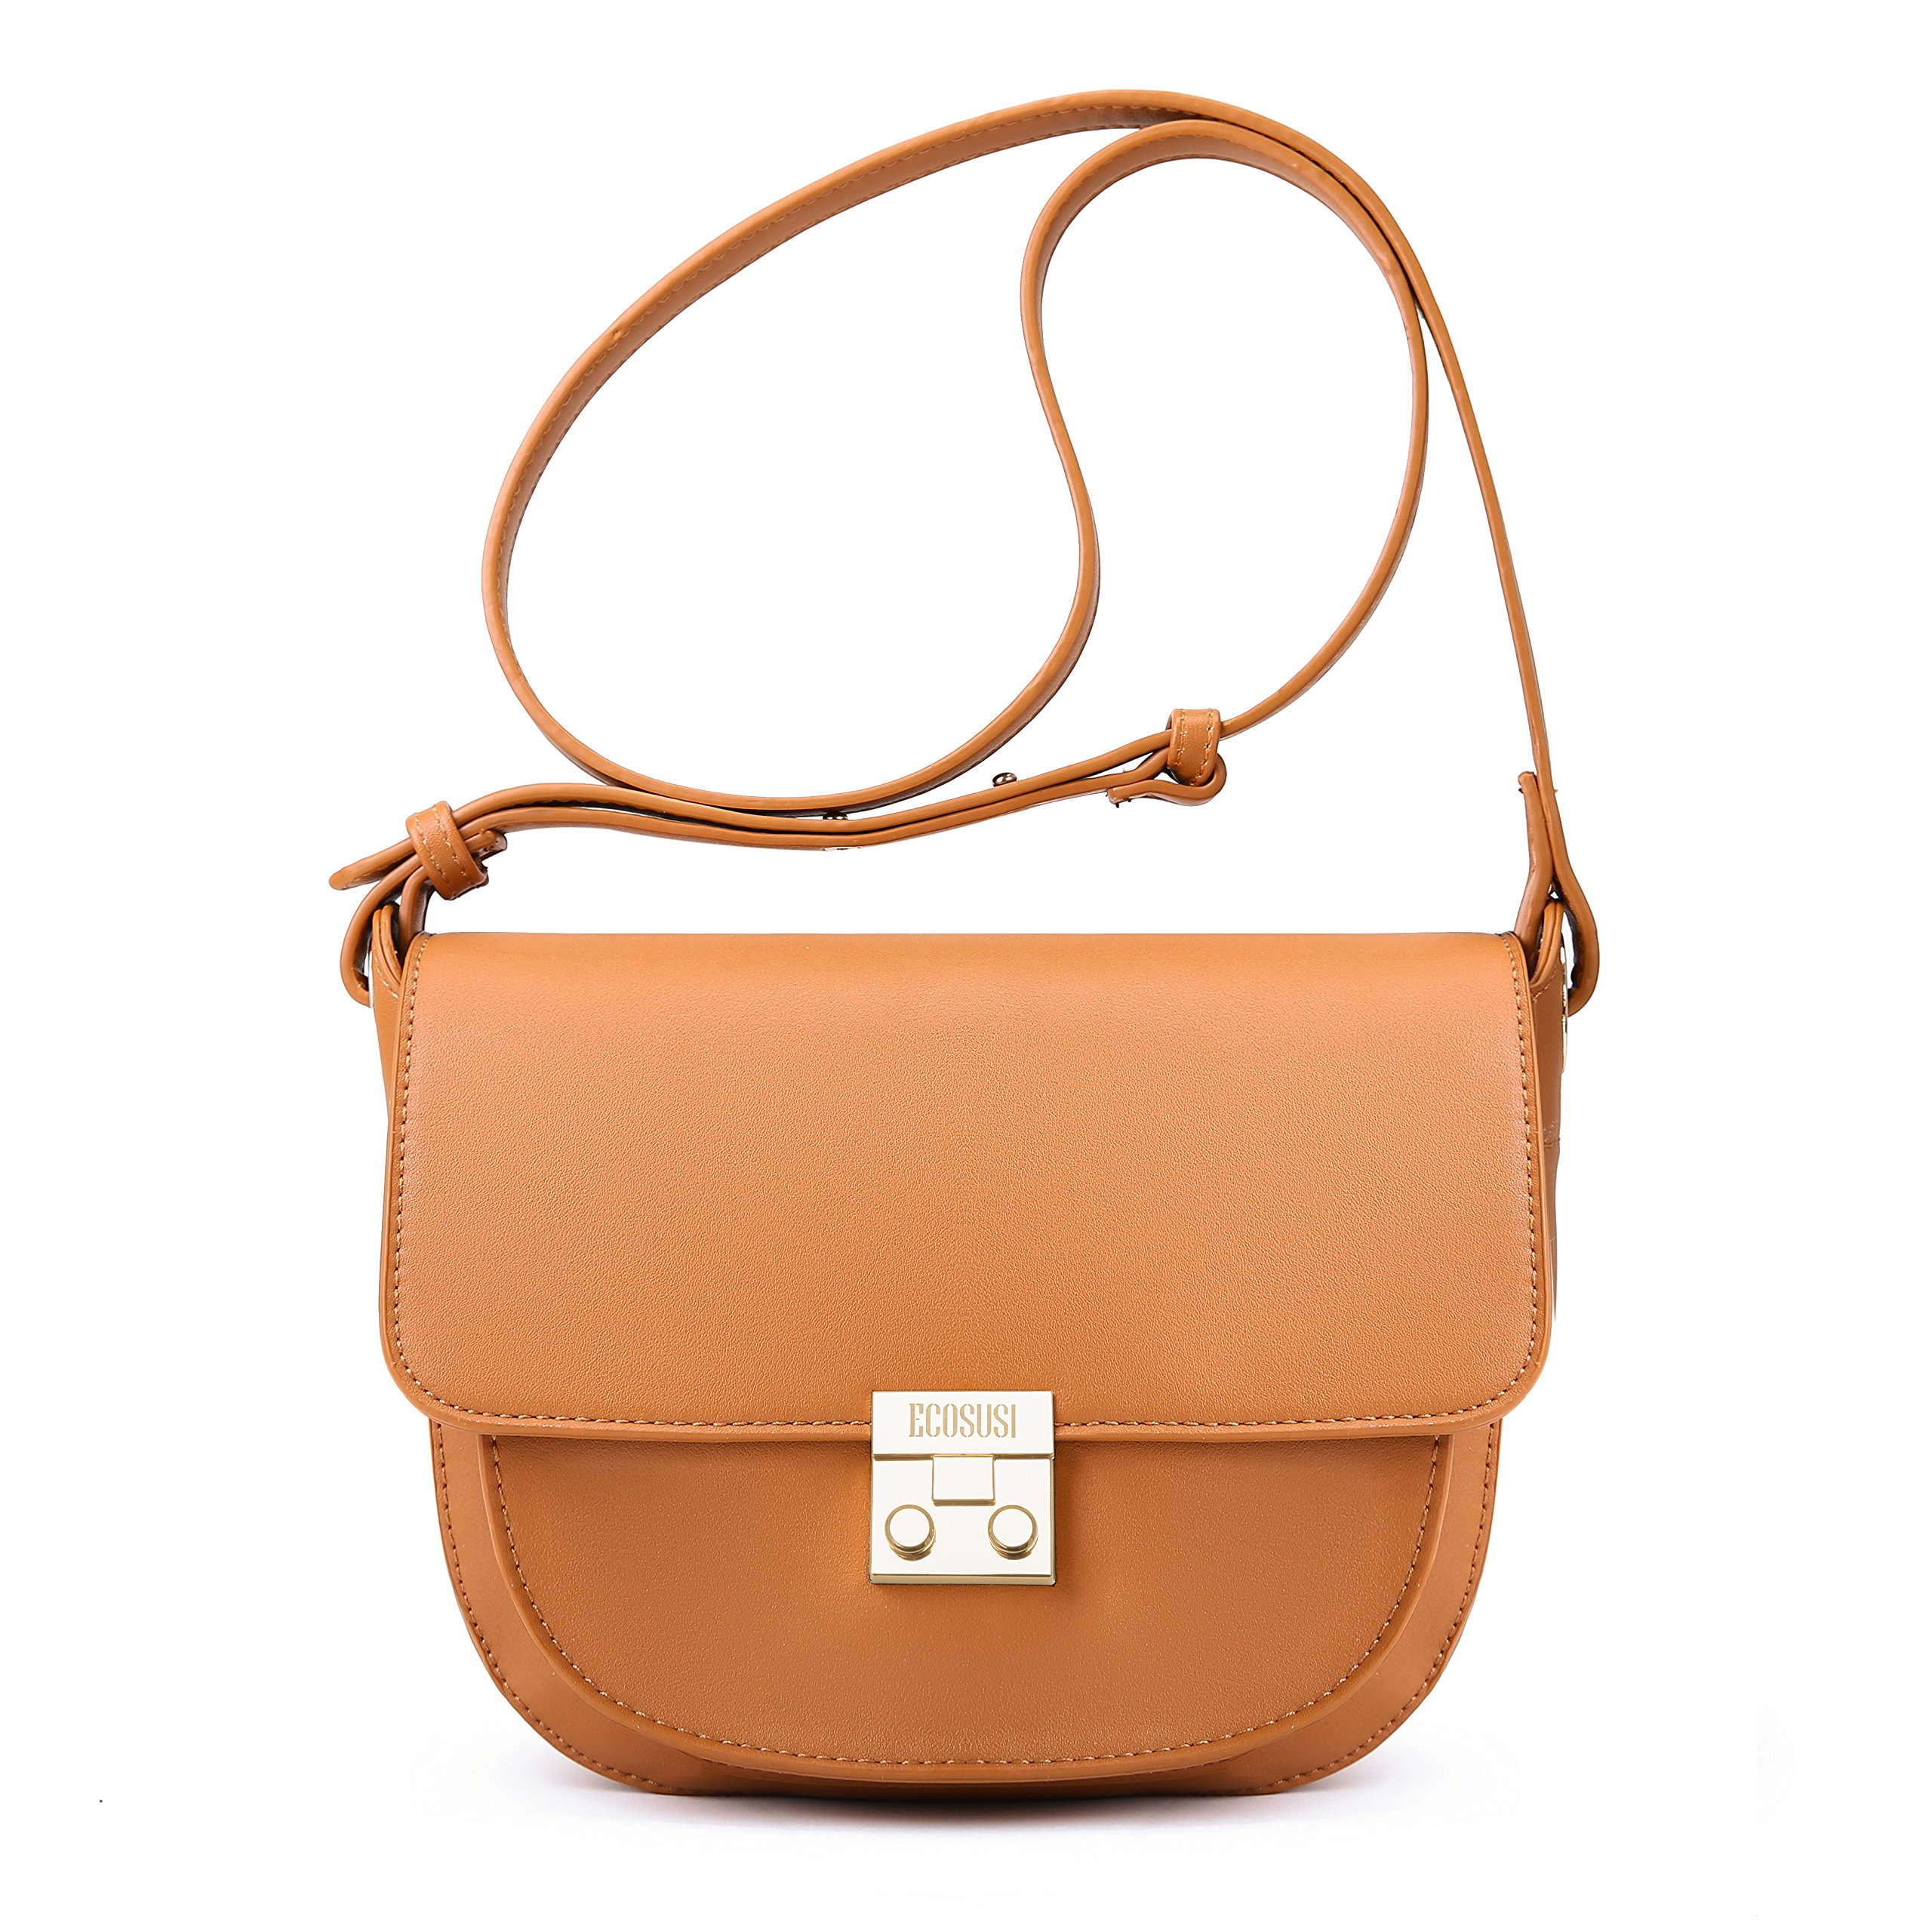 ECOSUSI Women Crossbody Saddle Bags Shoulder Purse with Flap Top & Phone Pocket, Brown